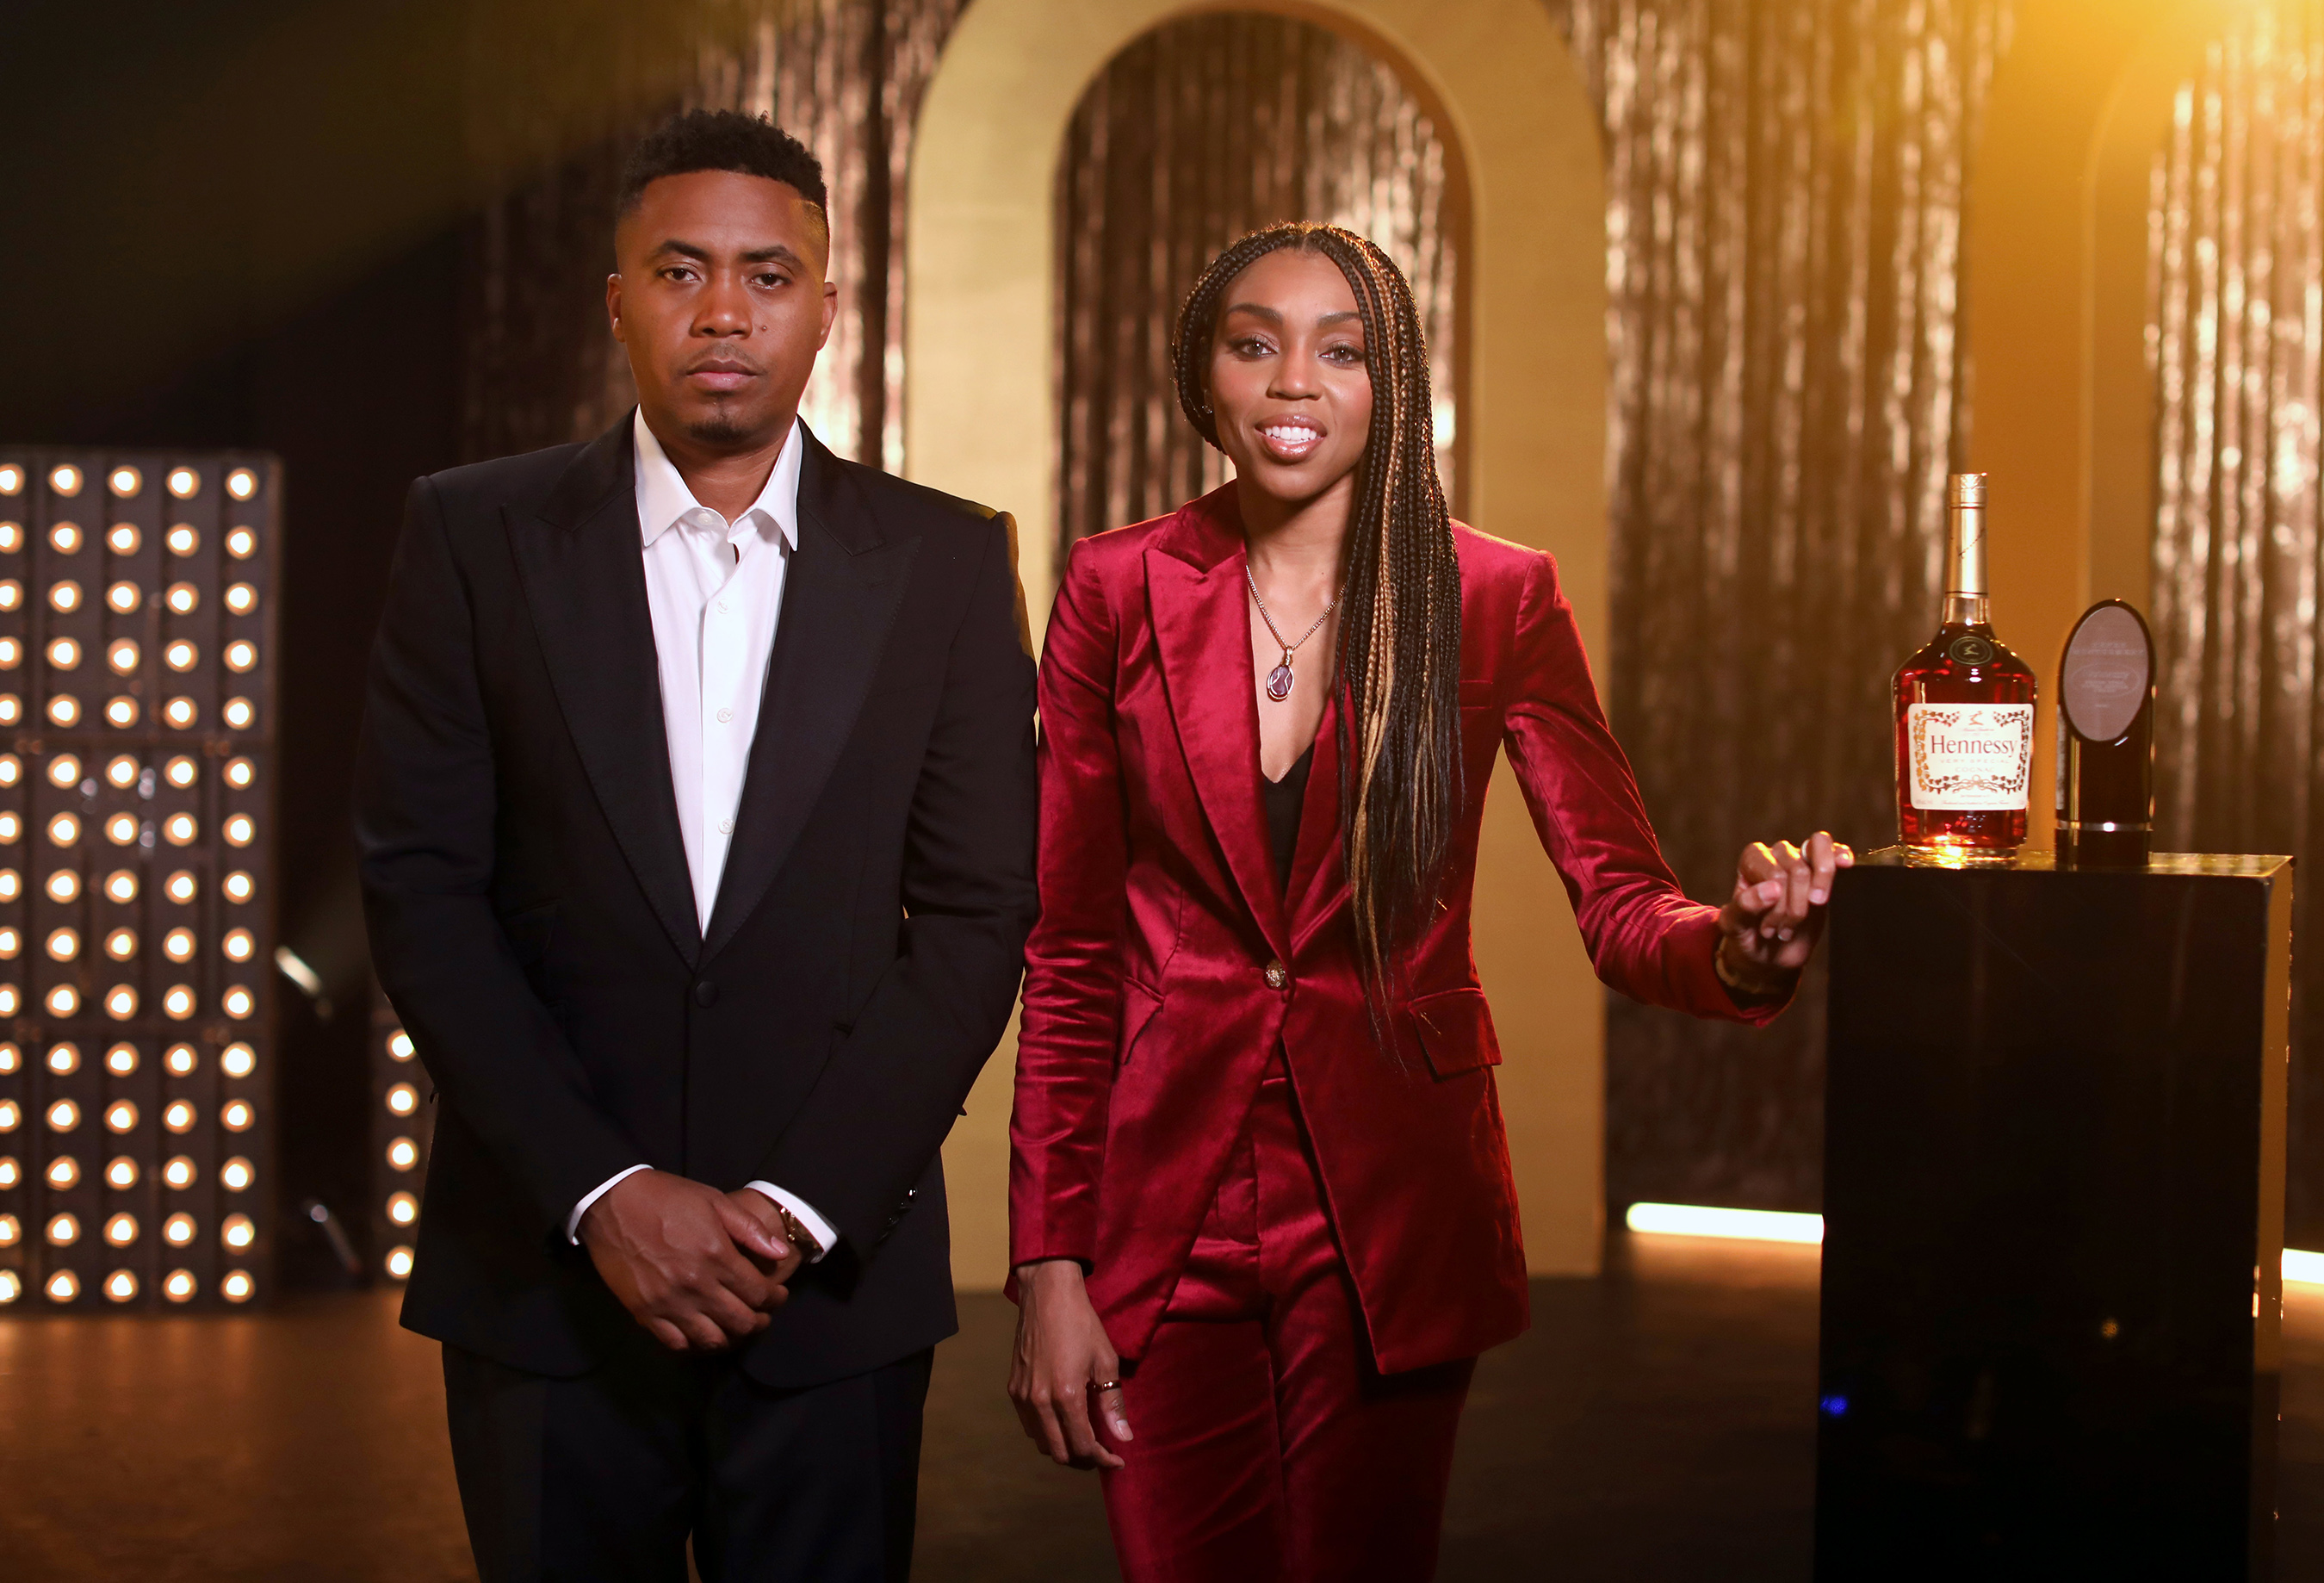 This past weekend during the 52nd Annual NAACP Image Awards, legendary recording artist Nas presented the first-ever Hennessy